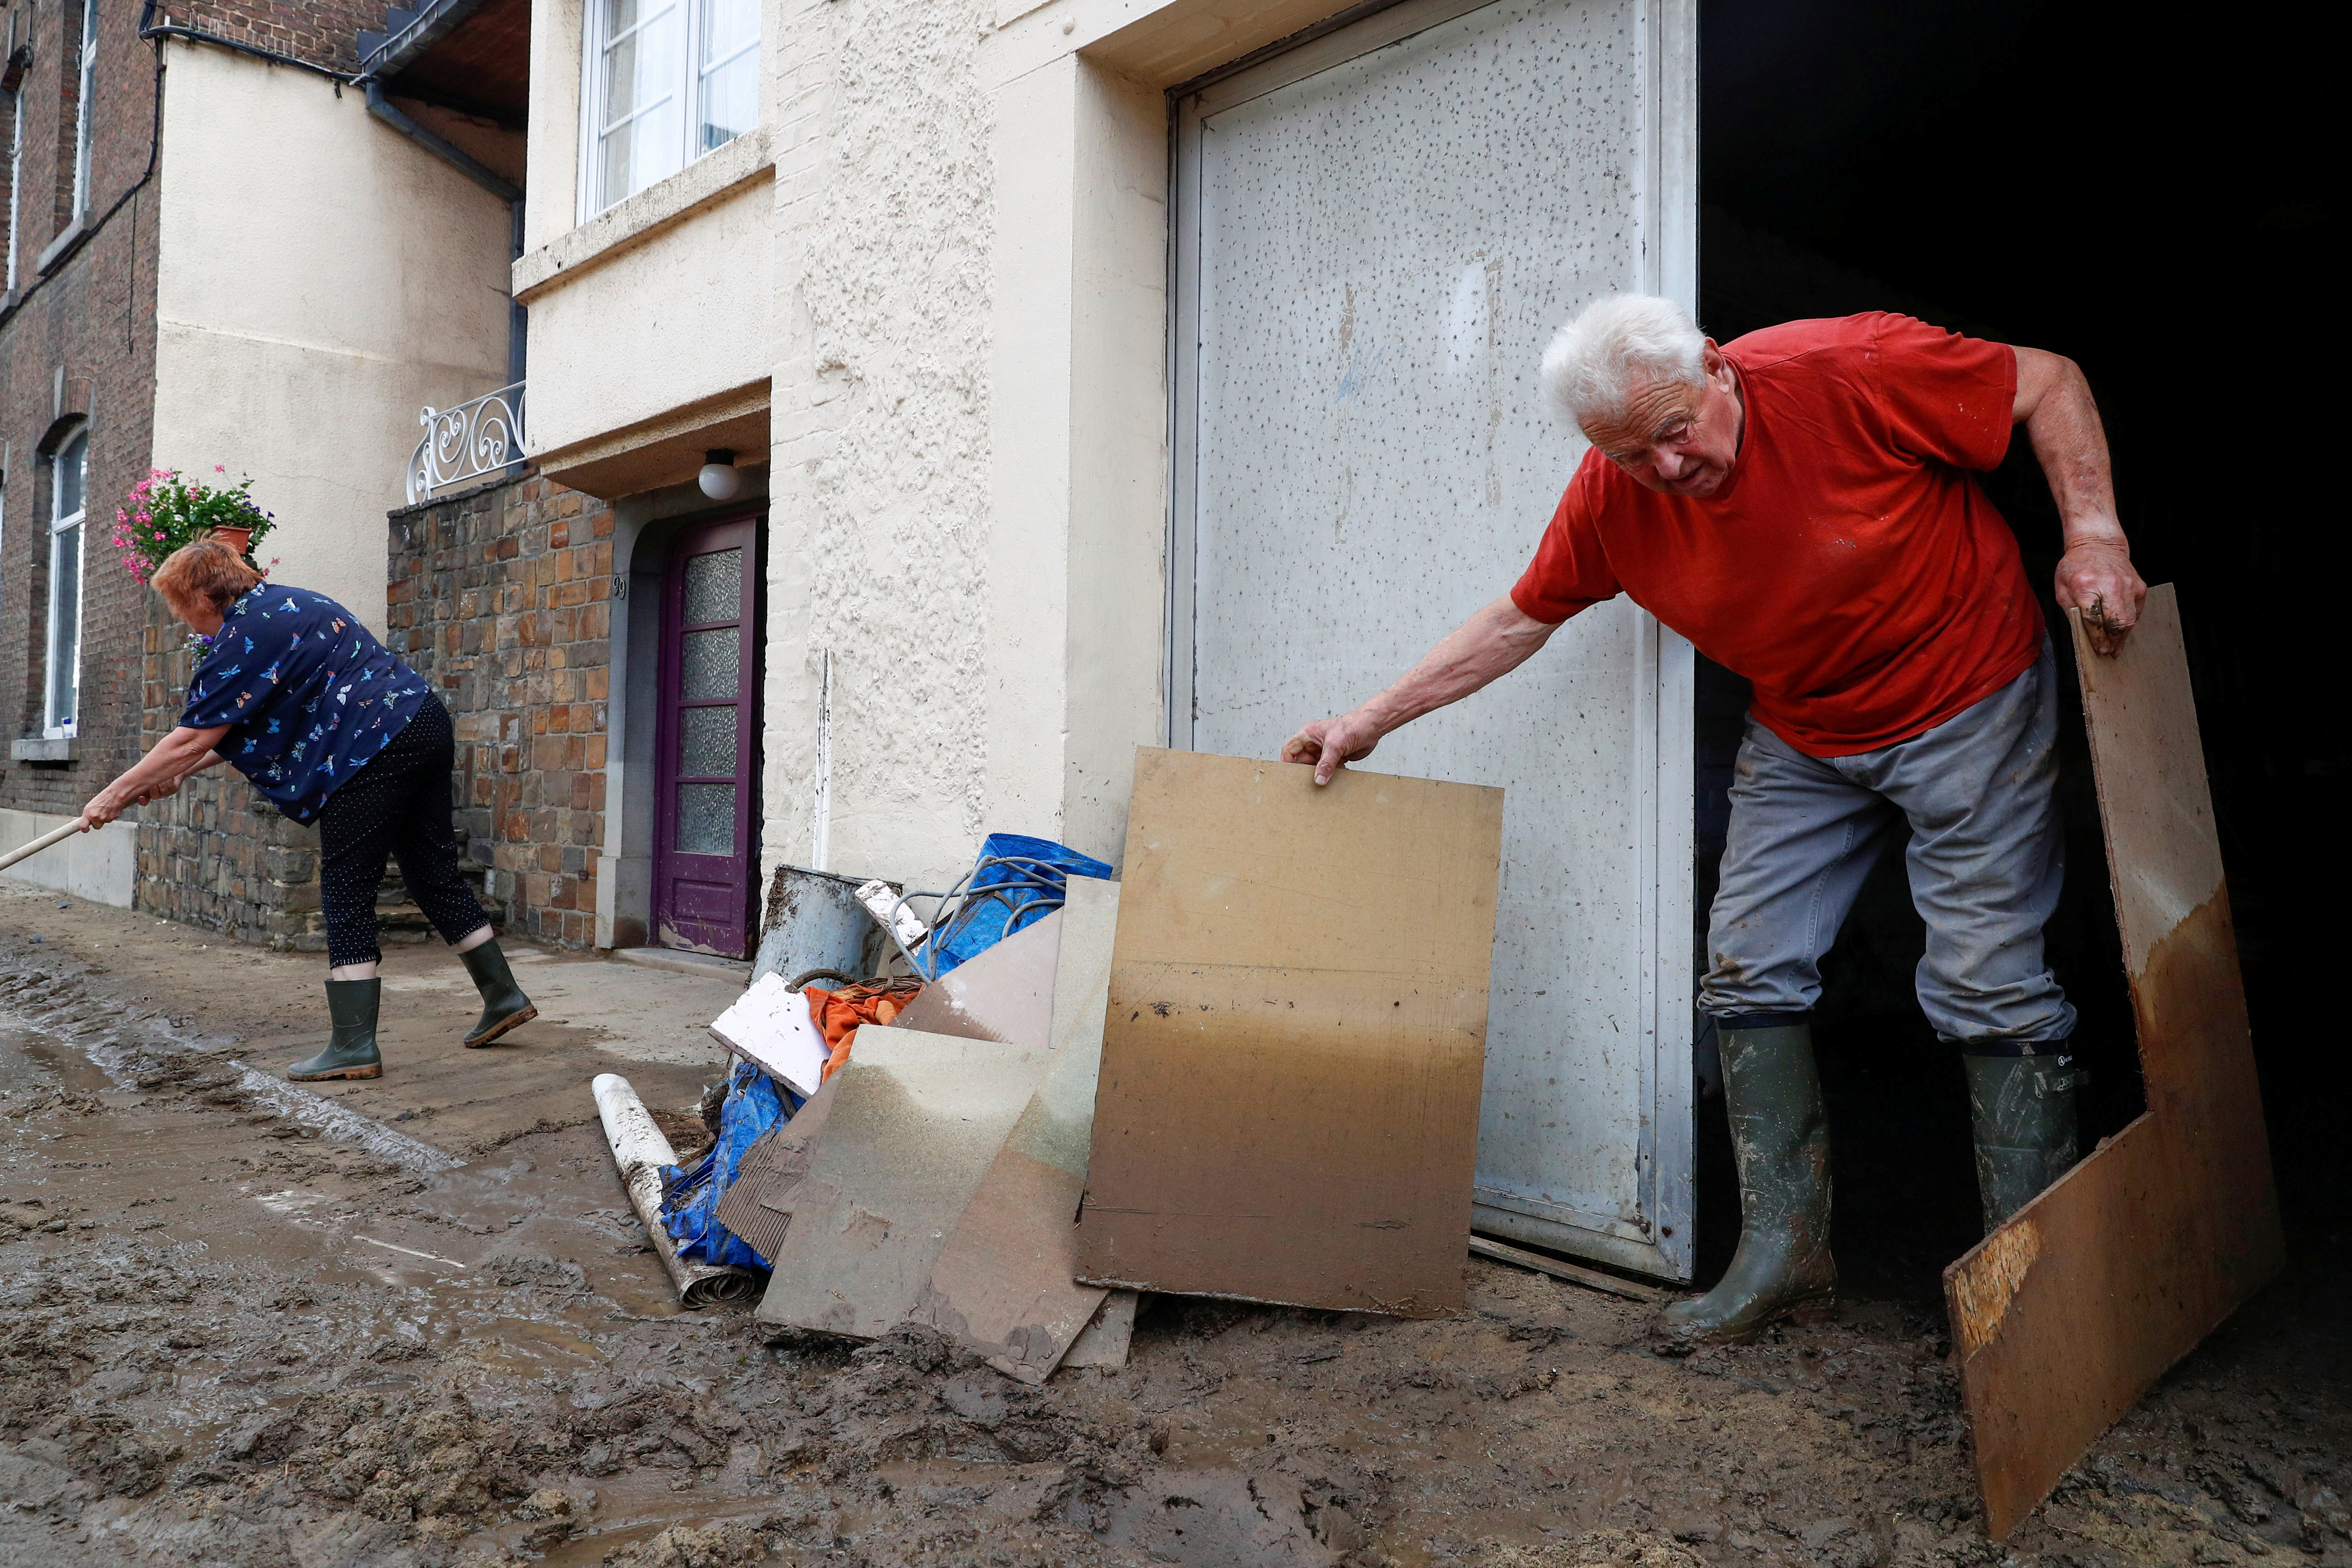 People work in an area affected by heavy rainfall in Dinant, Belgium July 25, 2021. REUTERS/Johanna Geron